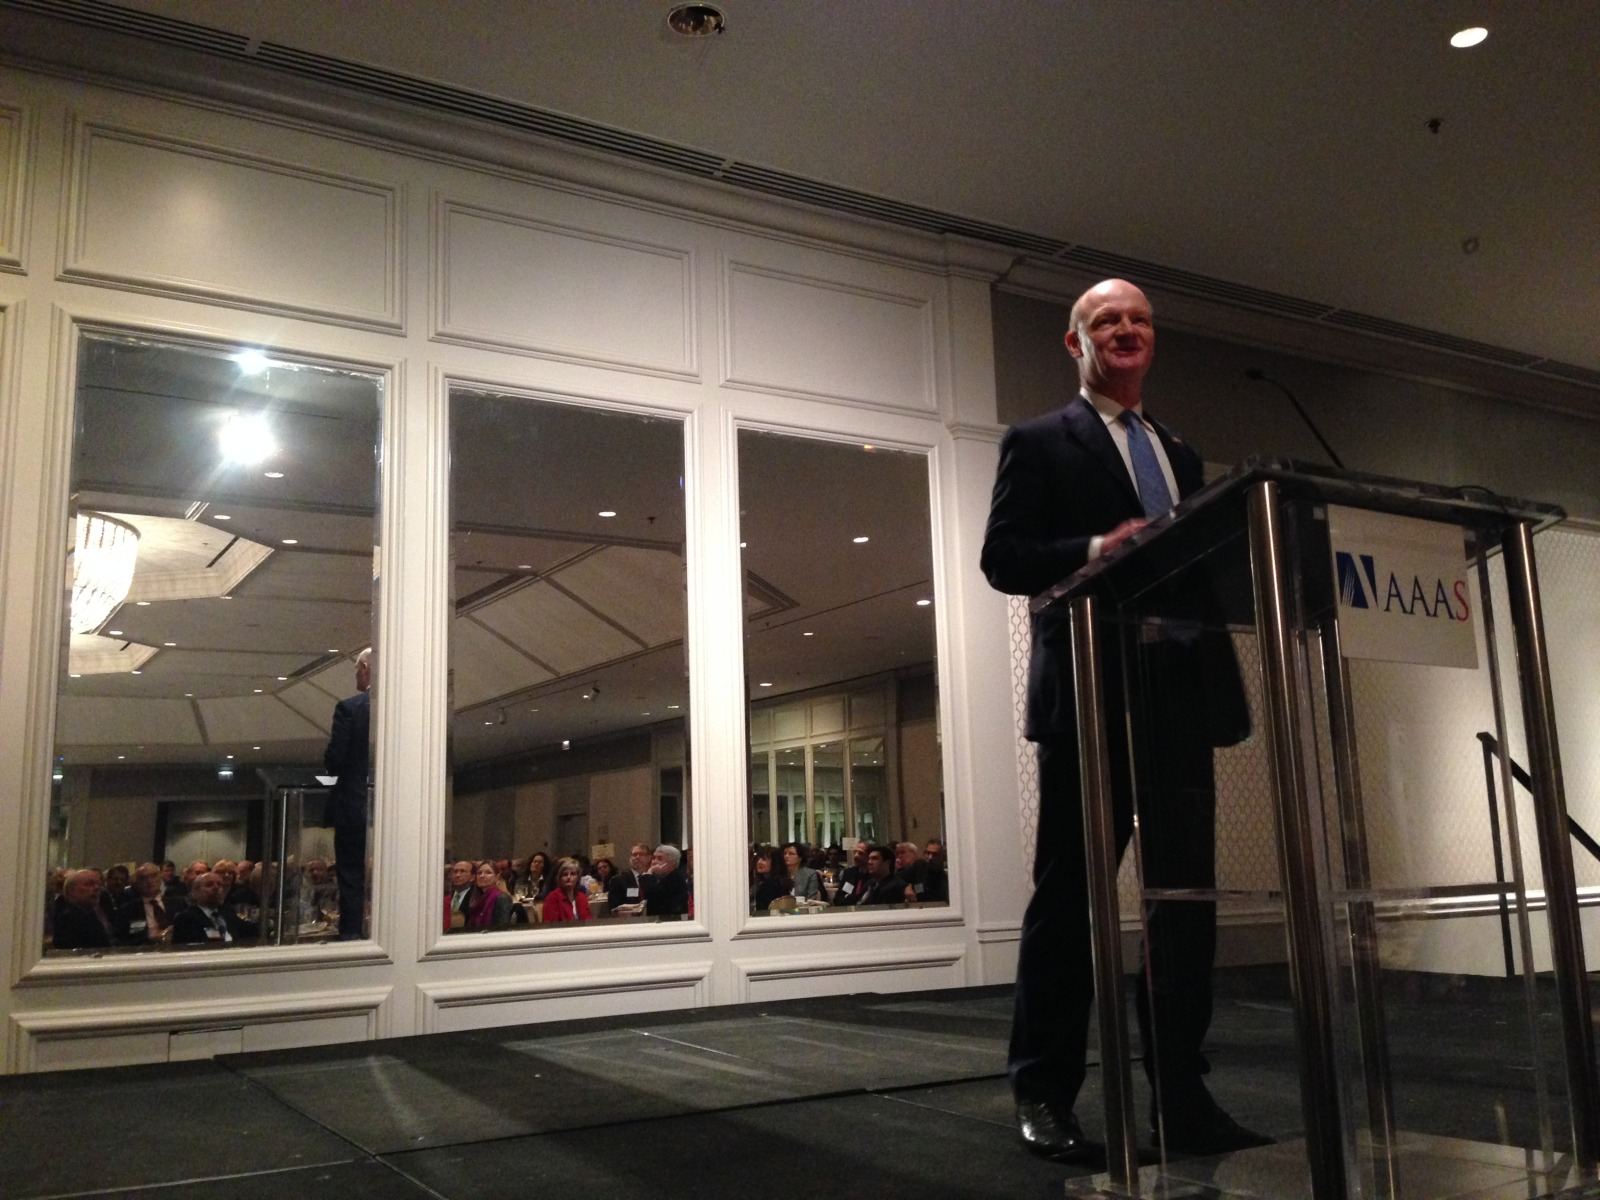 UK Minister for Universities and Science, David Willetts